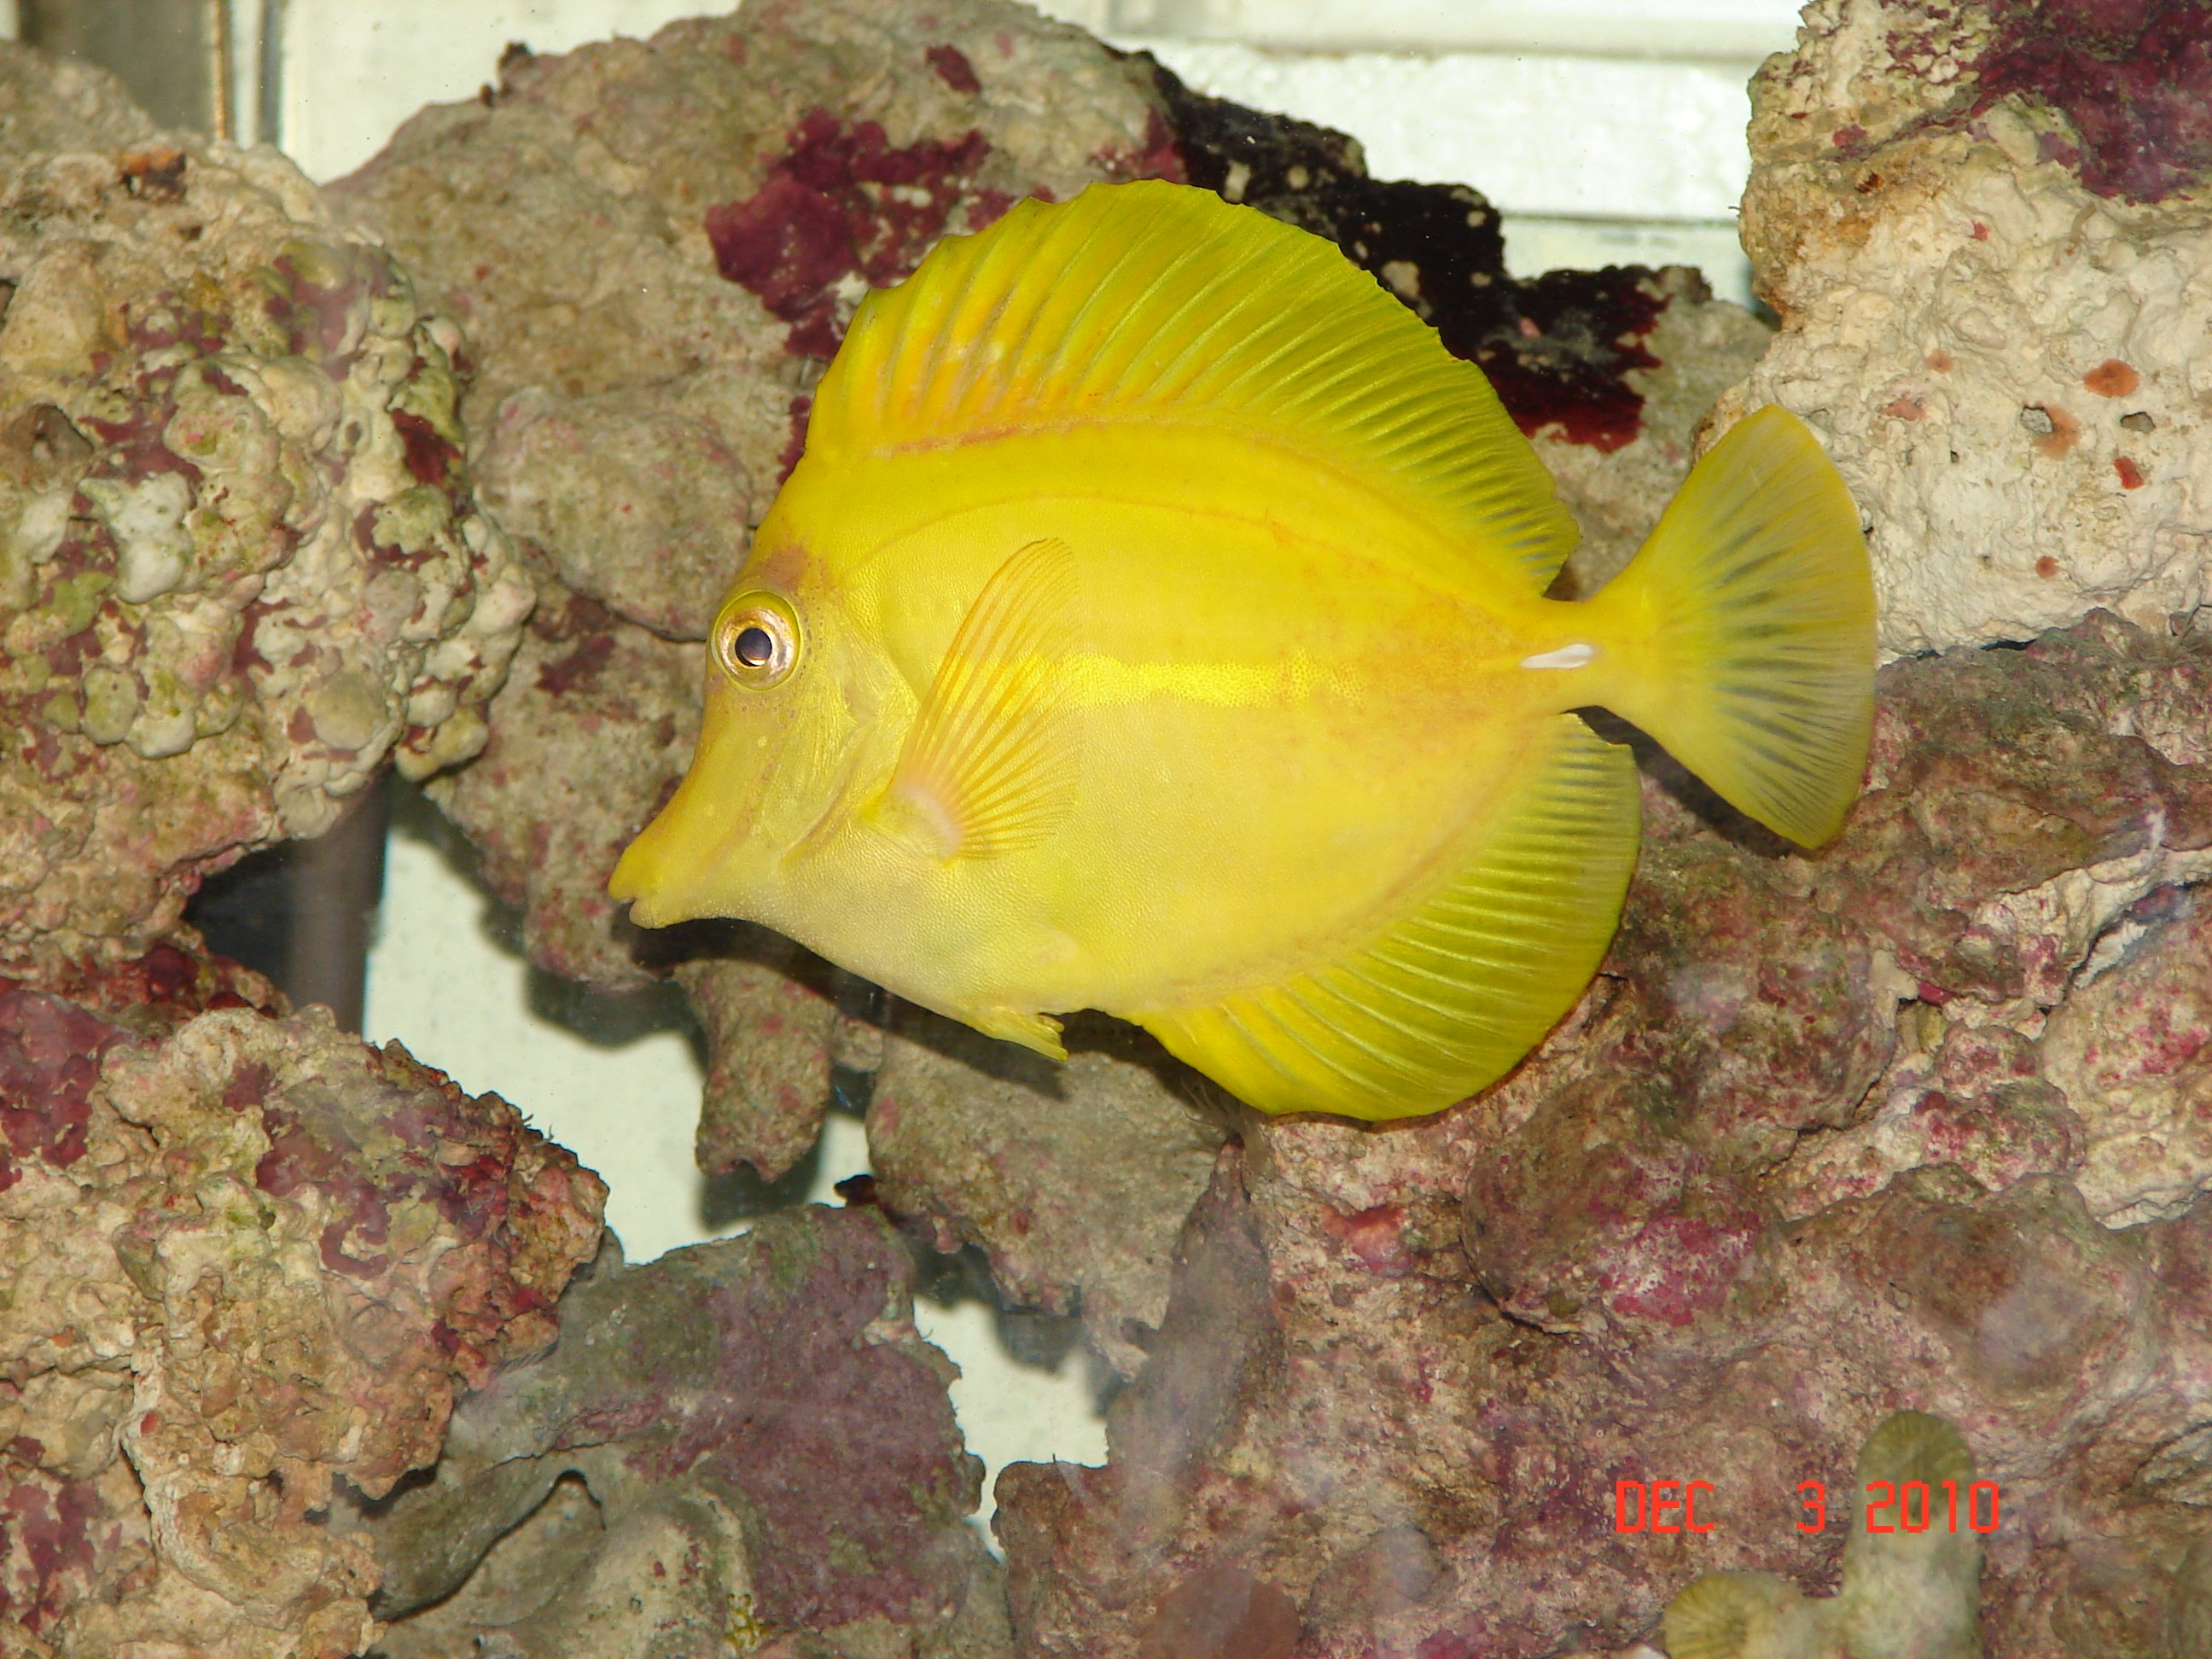 Bacterial infection yellow tang saltwaterfish forum for Fish bacterial infection